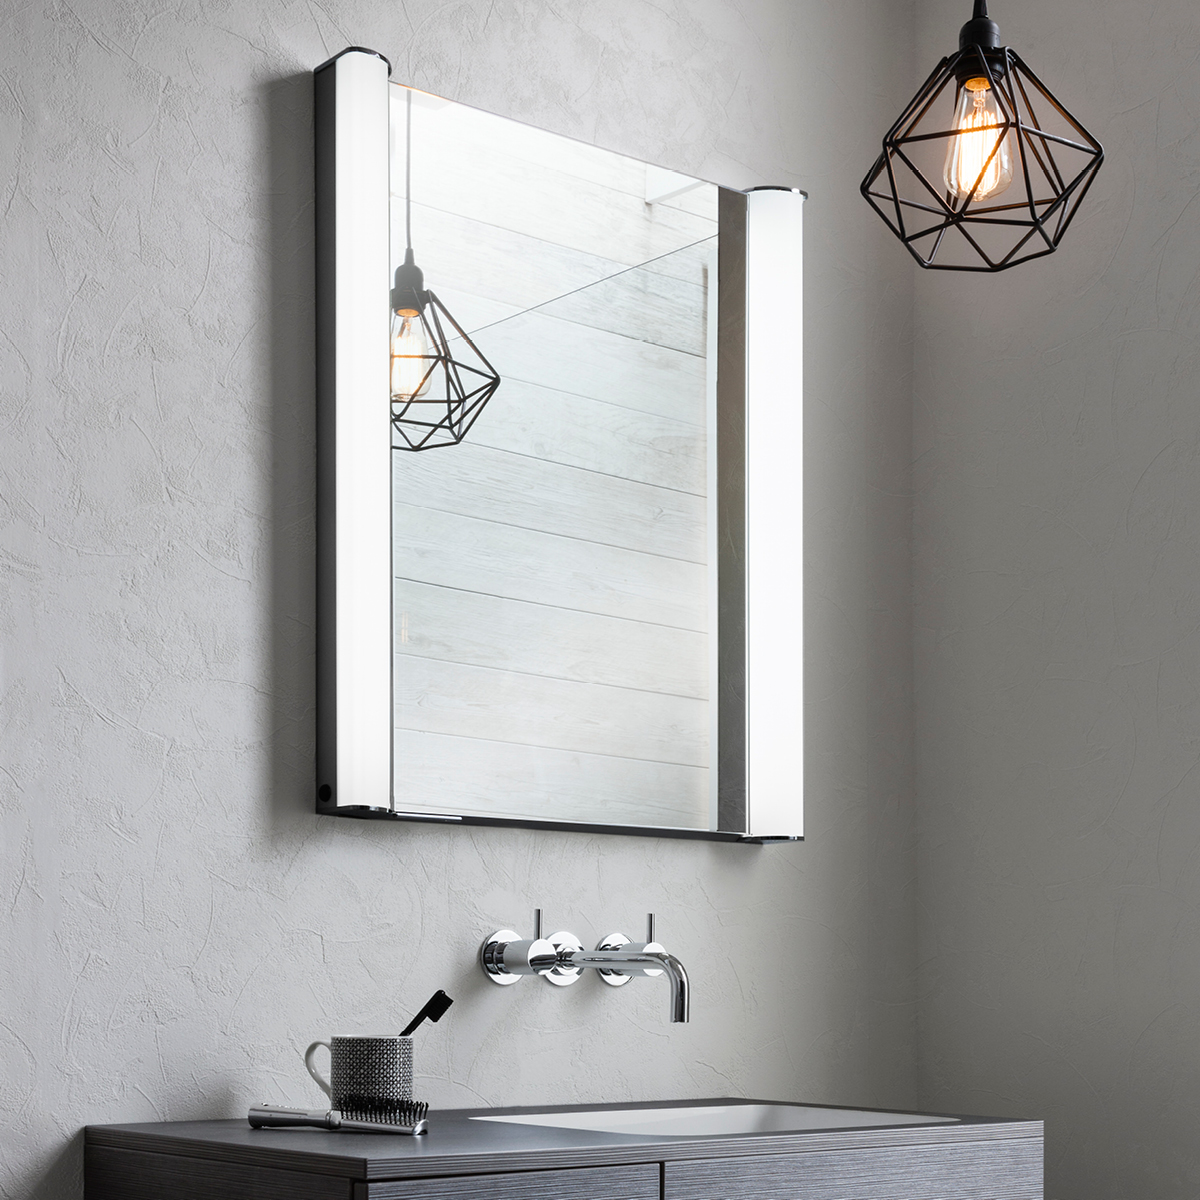 Bathroom Cabinet With Mirror Duo 600 Illuminated Mirrored Cabinet In Duo Luxury